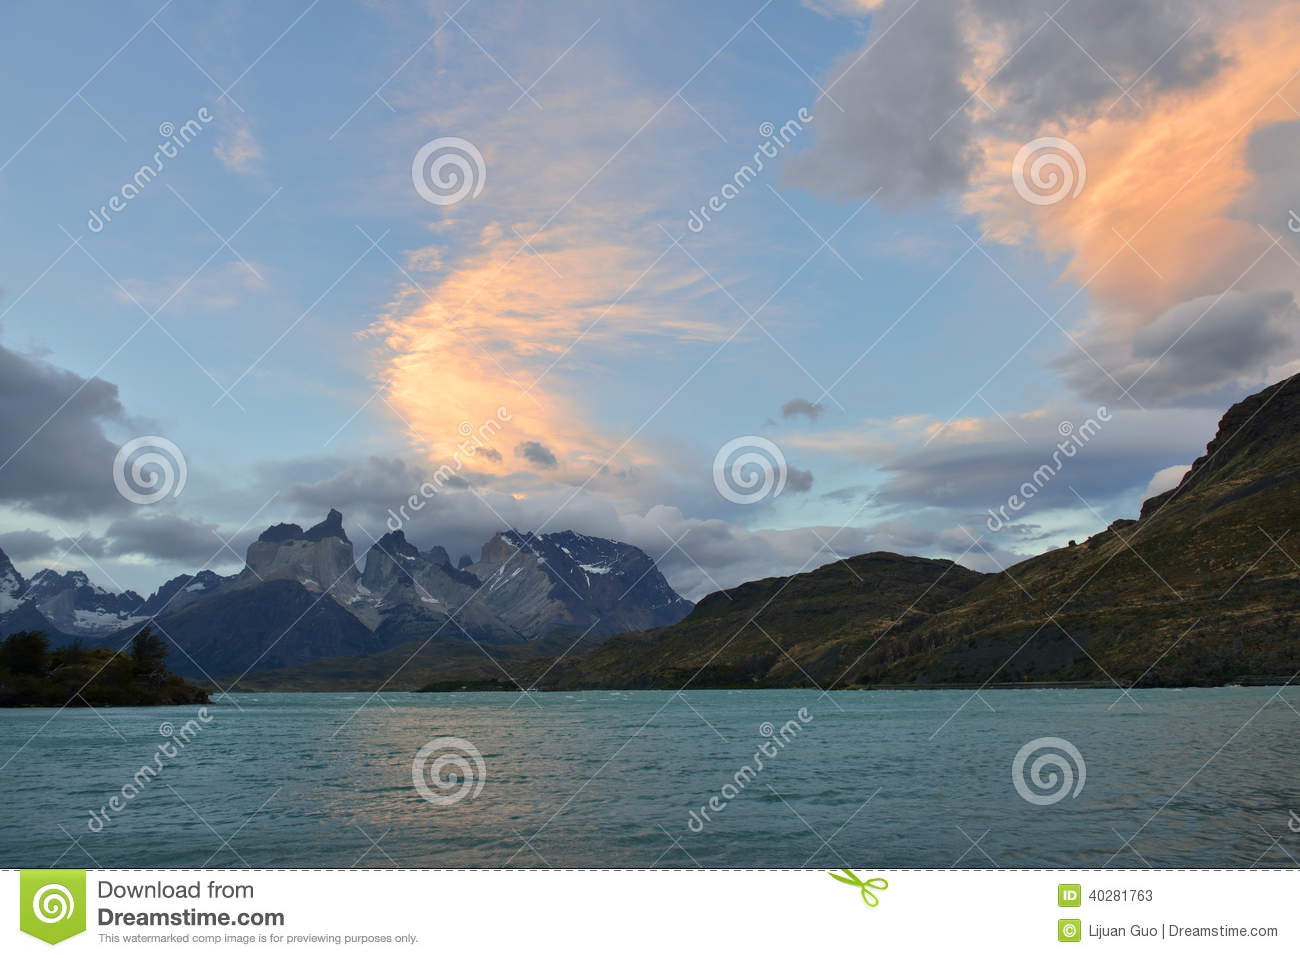 Torres del Paine at Sunset, Chile